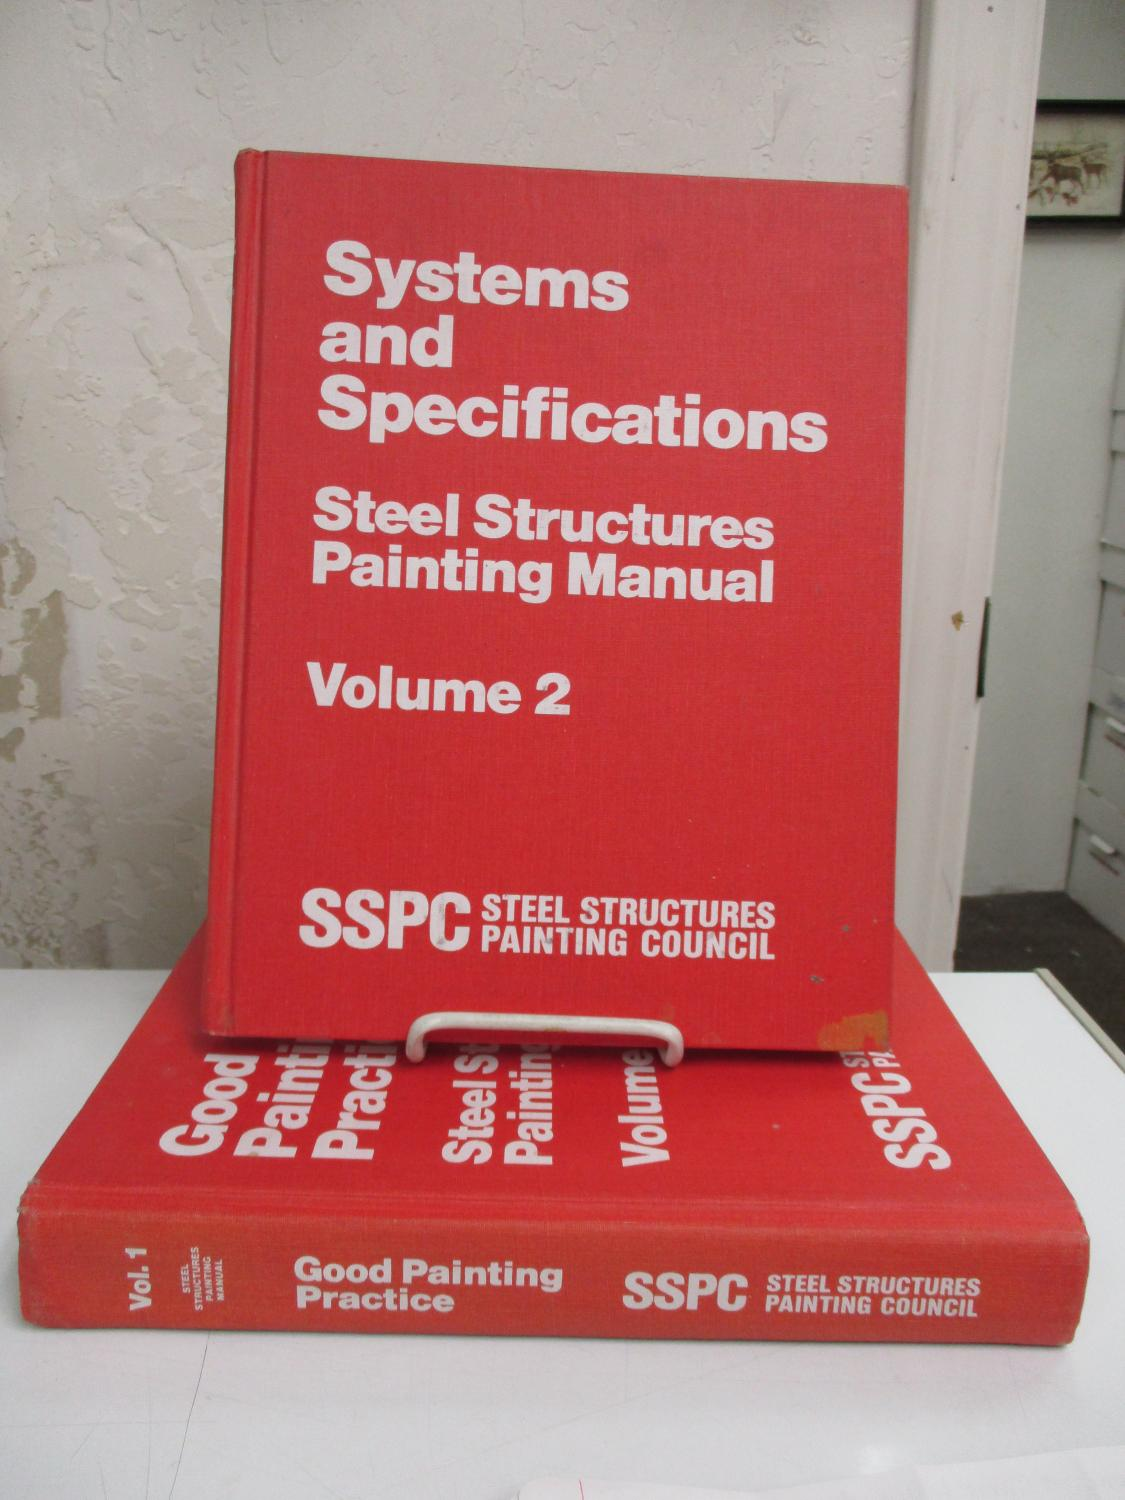 steel structures painting manual good painting practice and rh abebooks com steel structures painting manual volume 2 steel structures painting manual volume 2